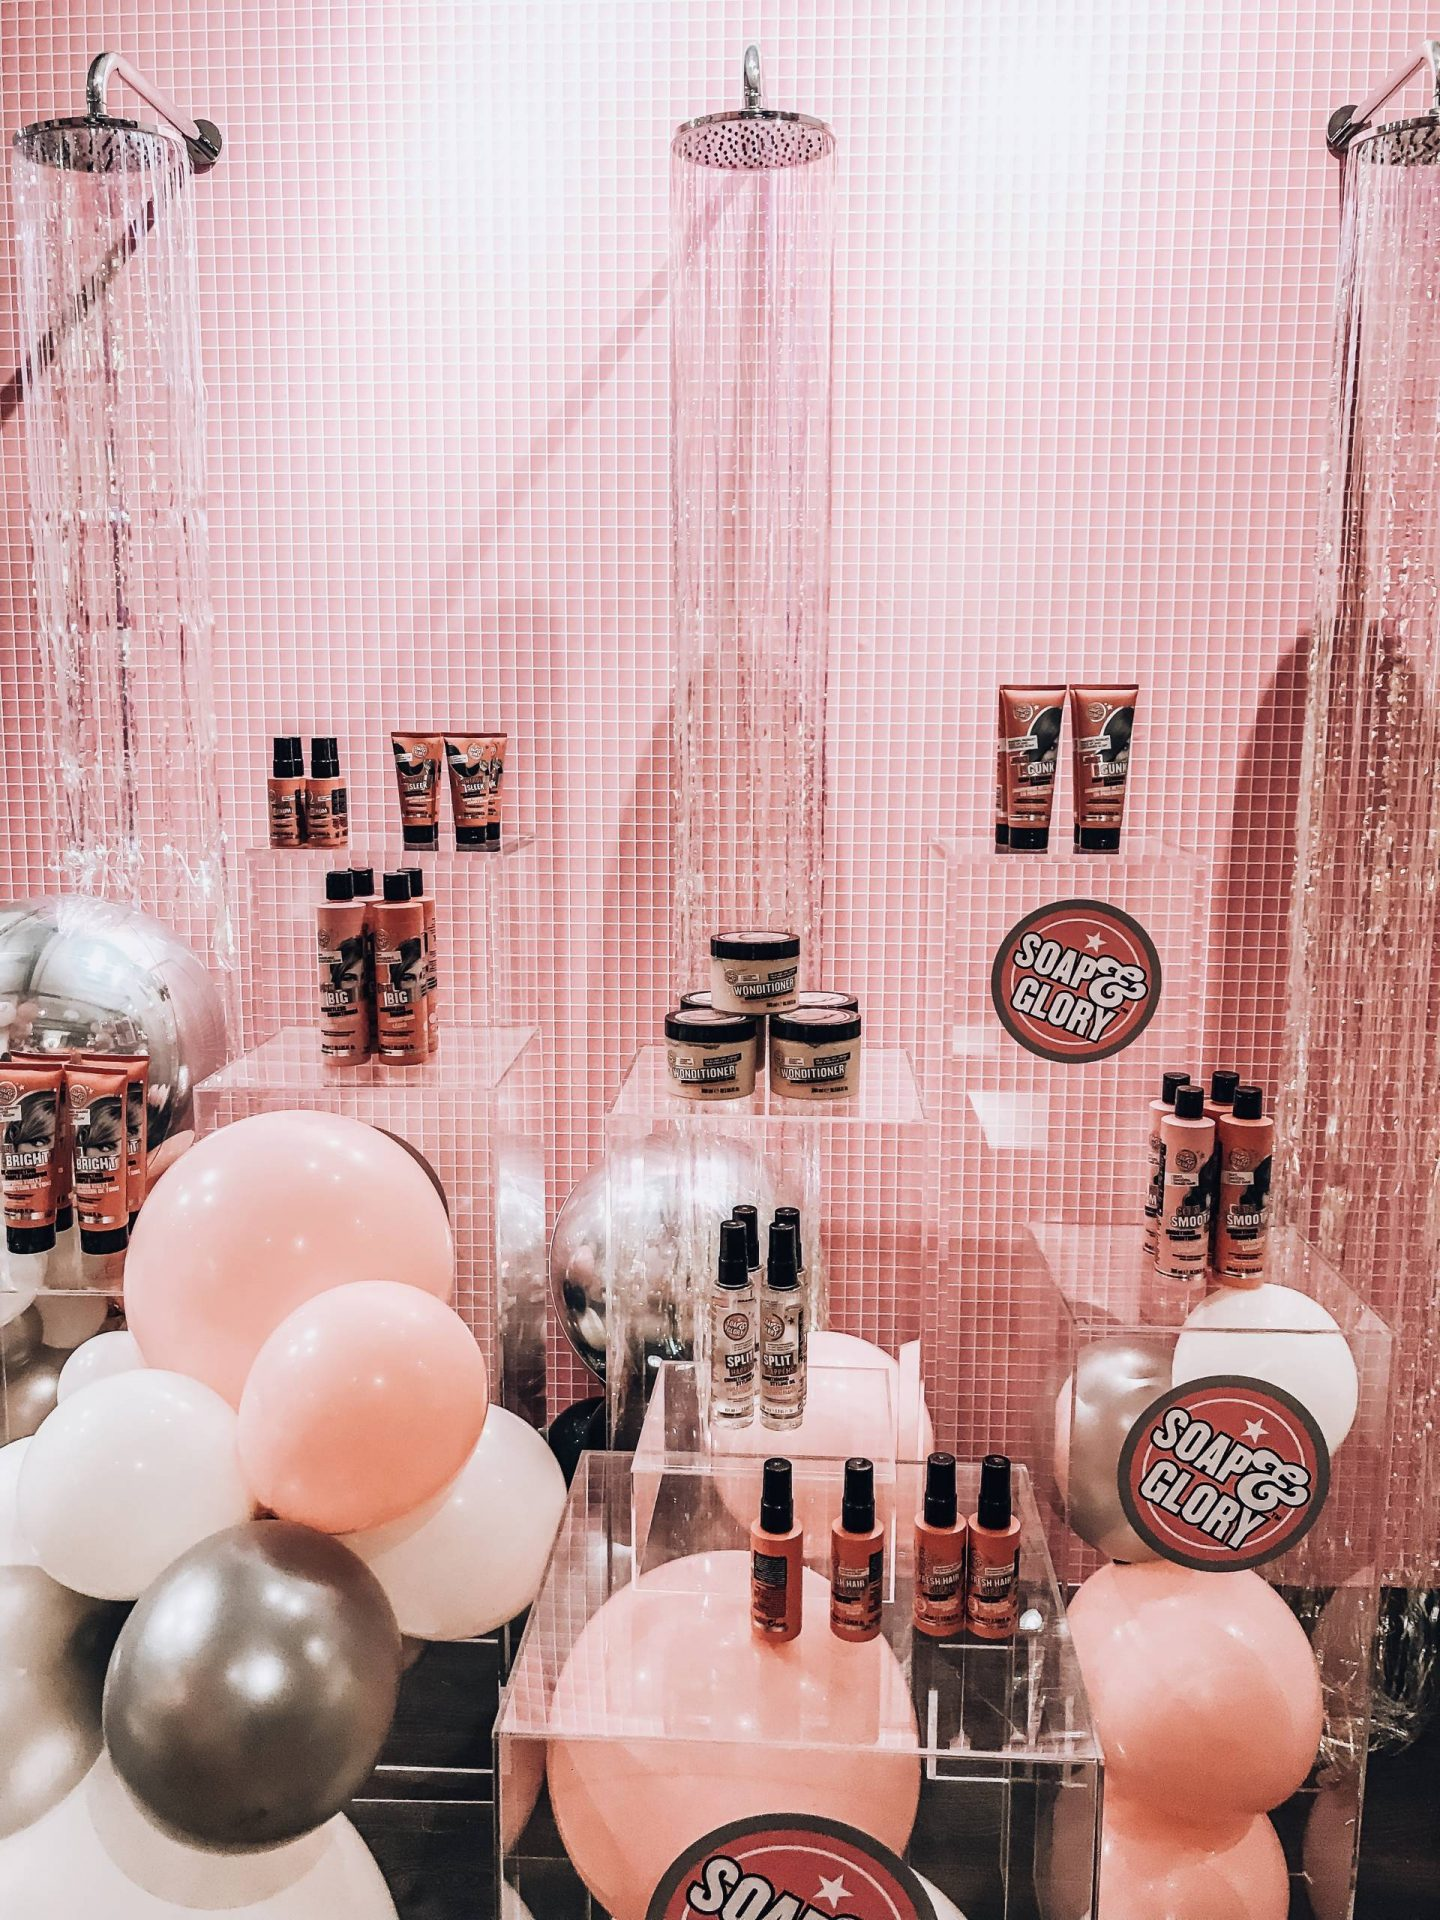 Soap and Glory haircare launch party